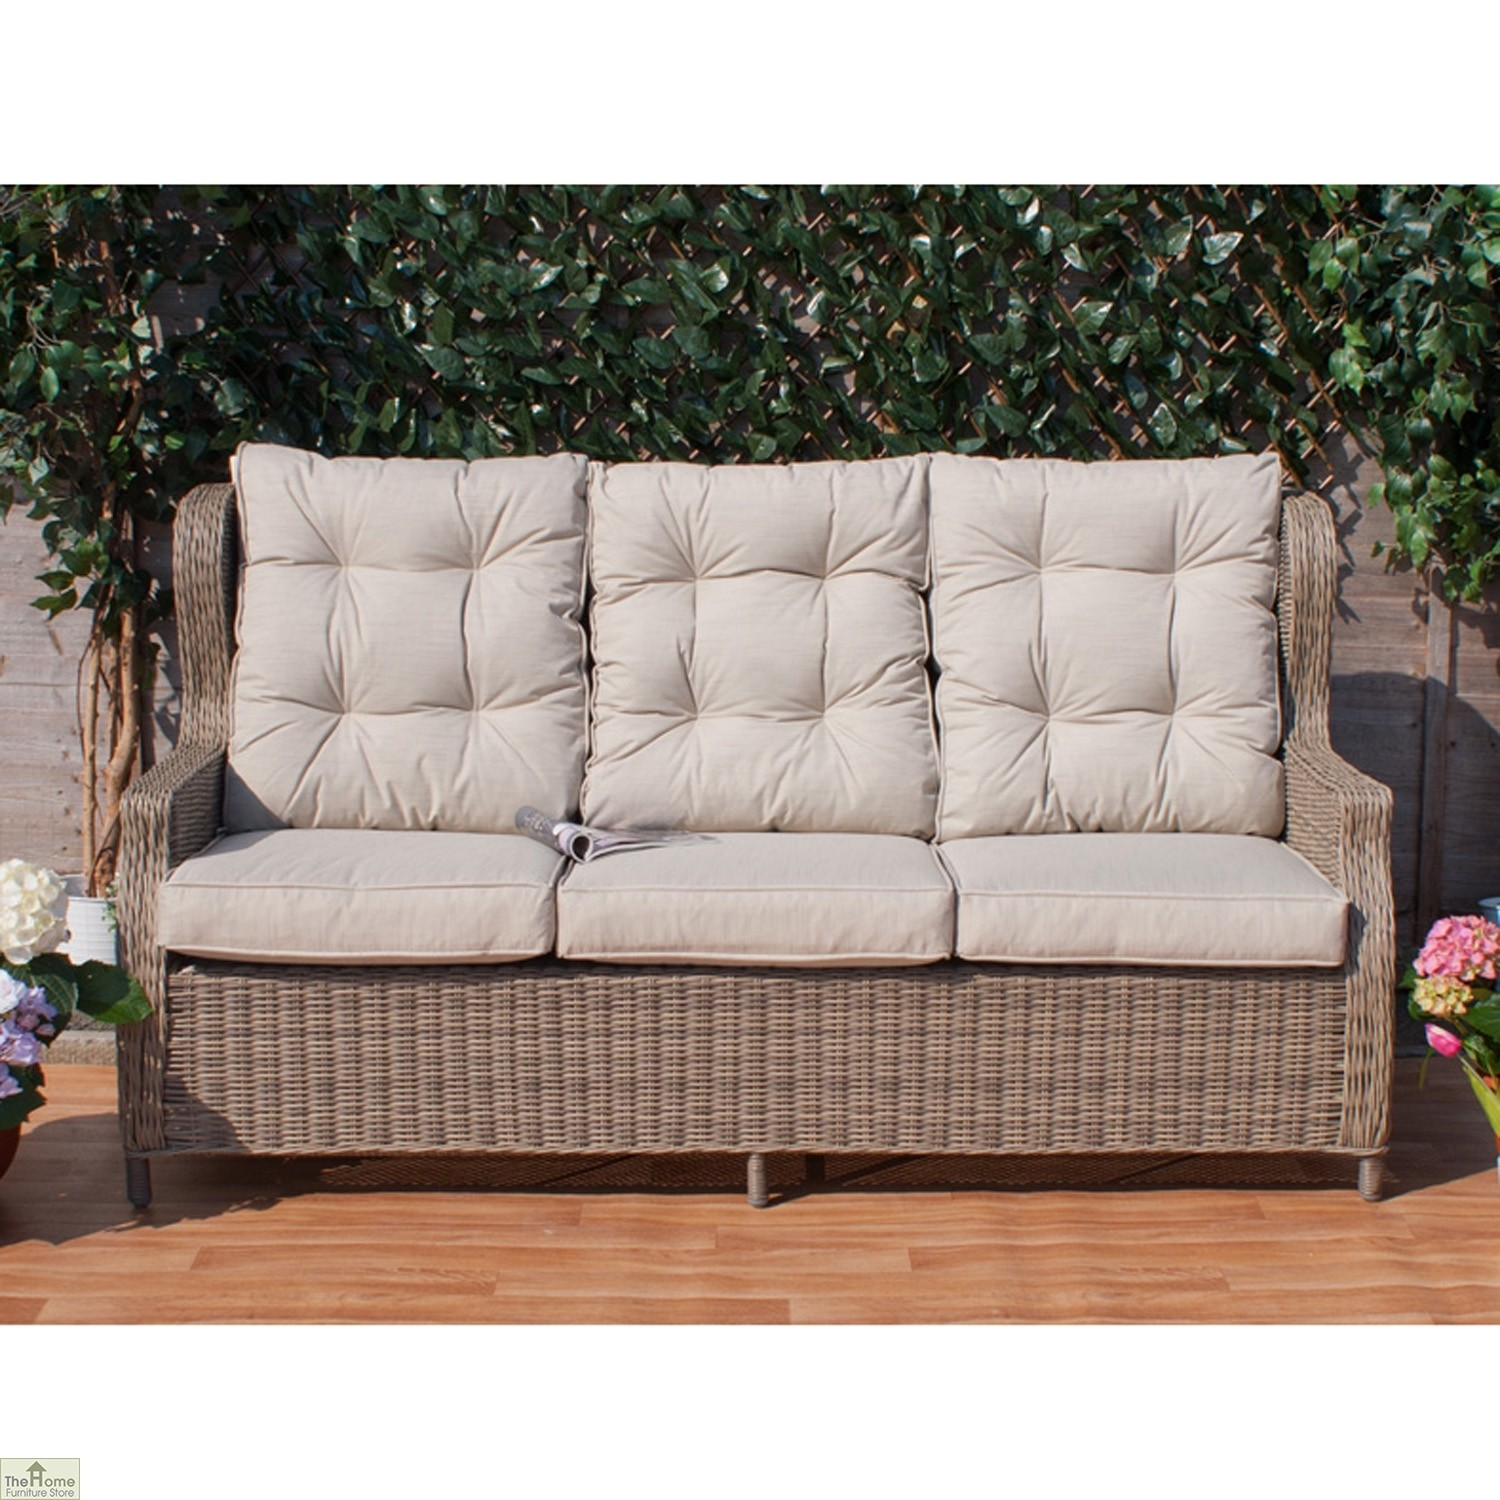 Casamore Corfu High Back 3 Seater Sofa